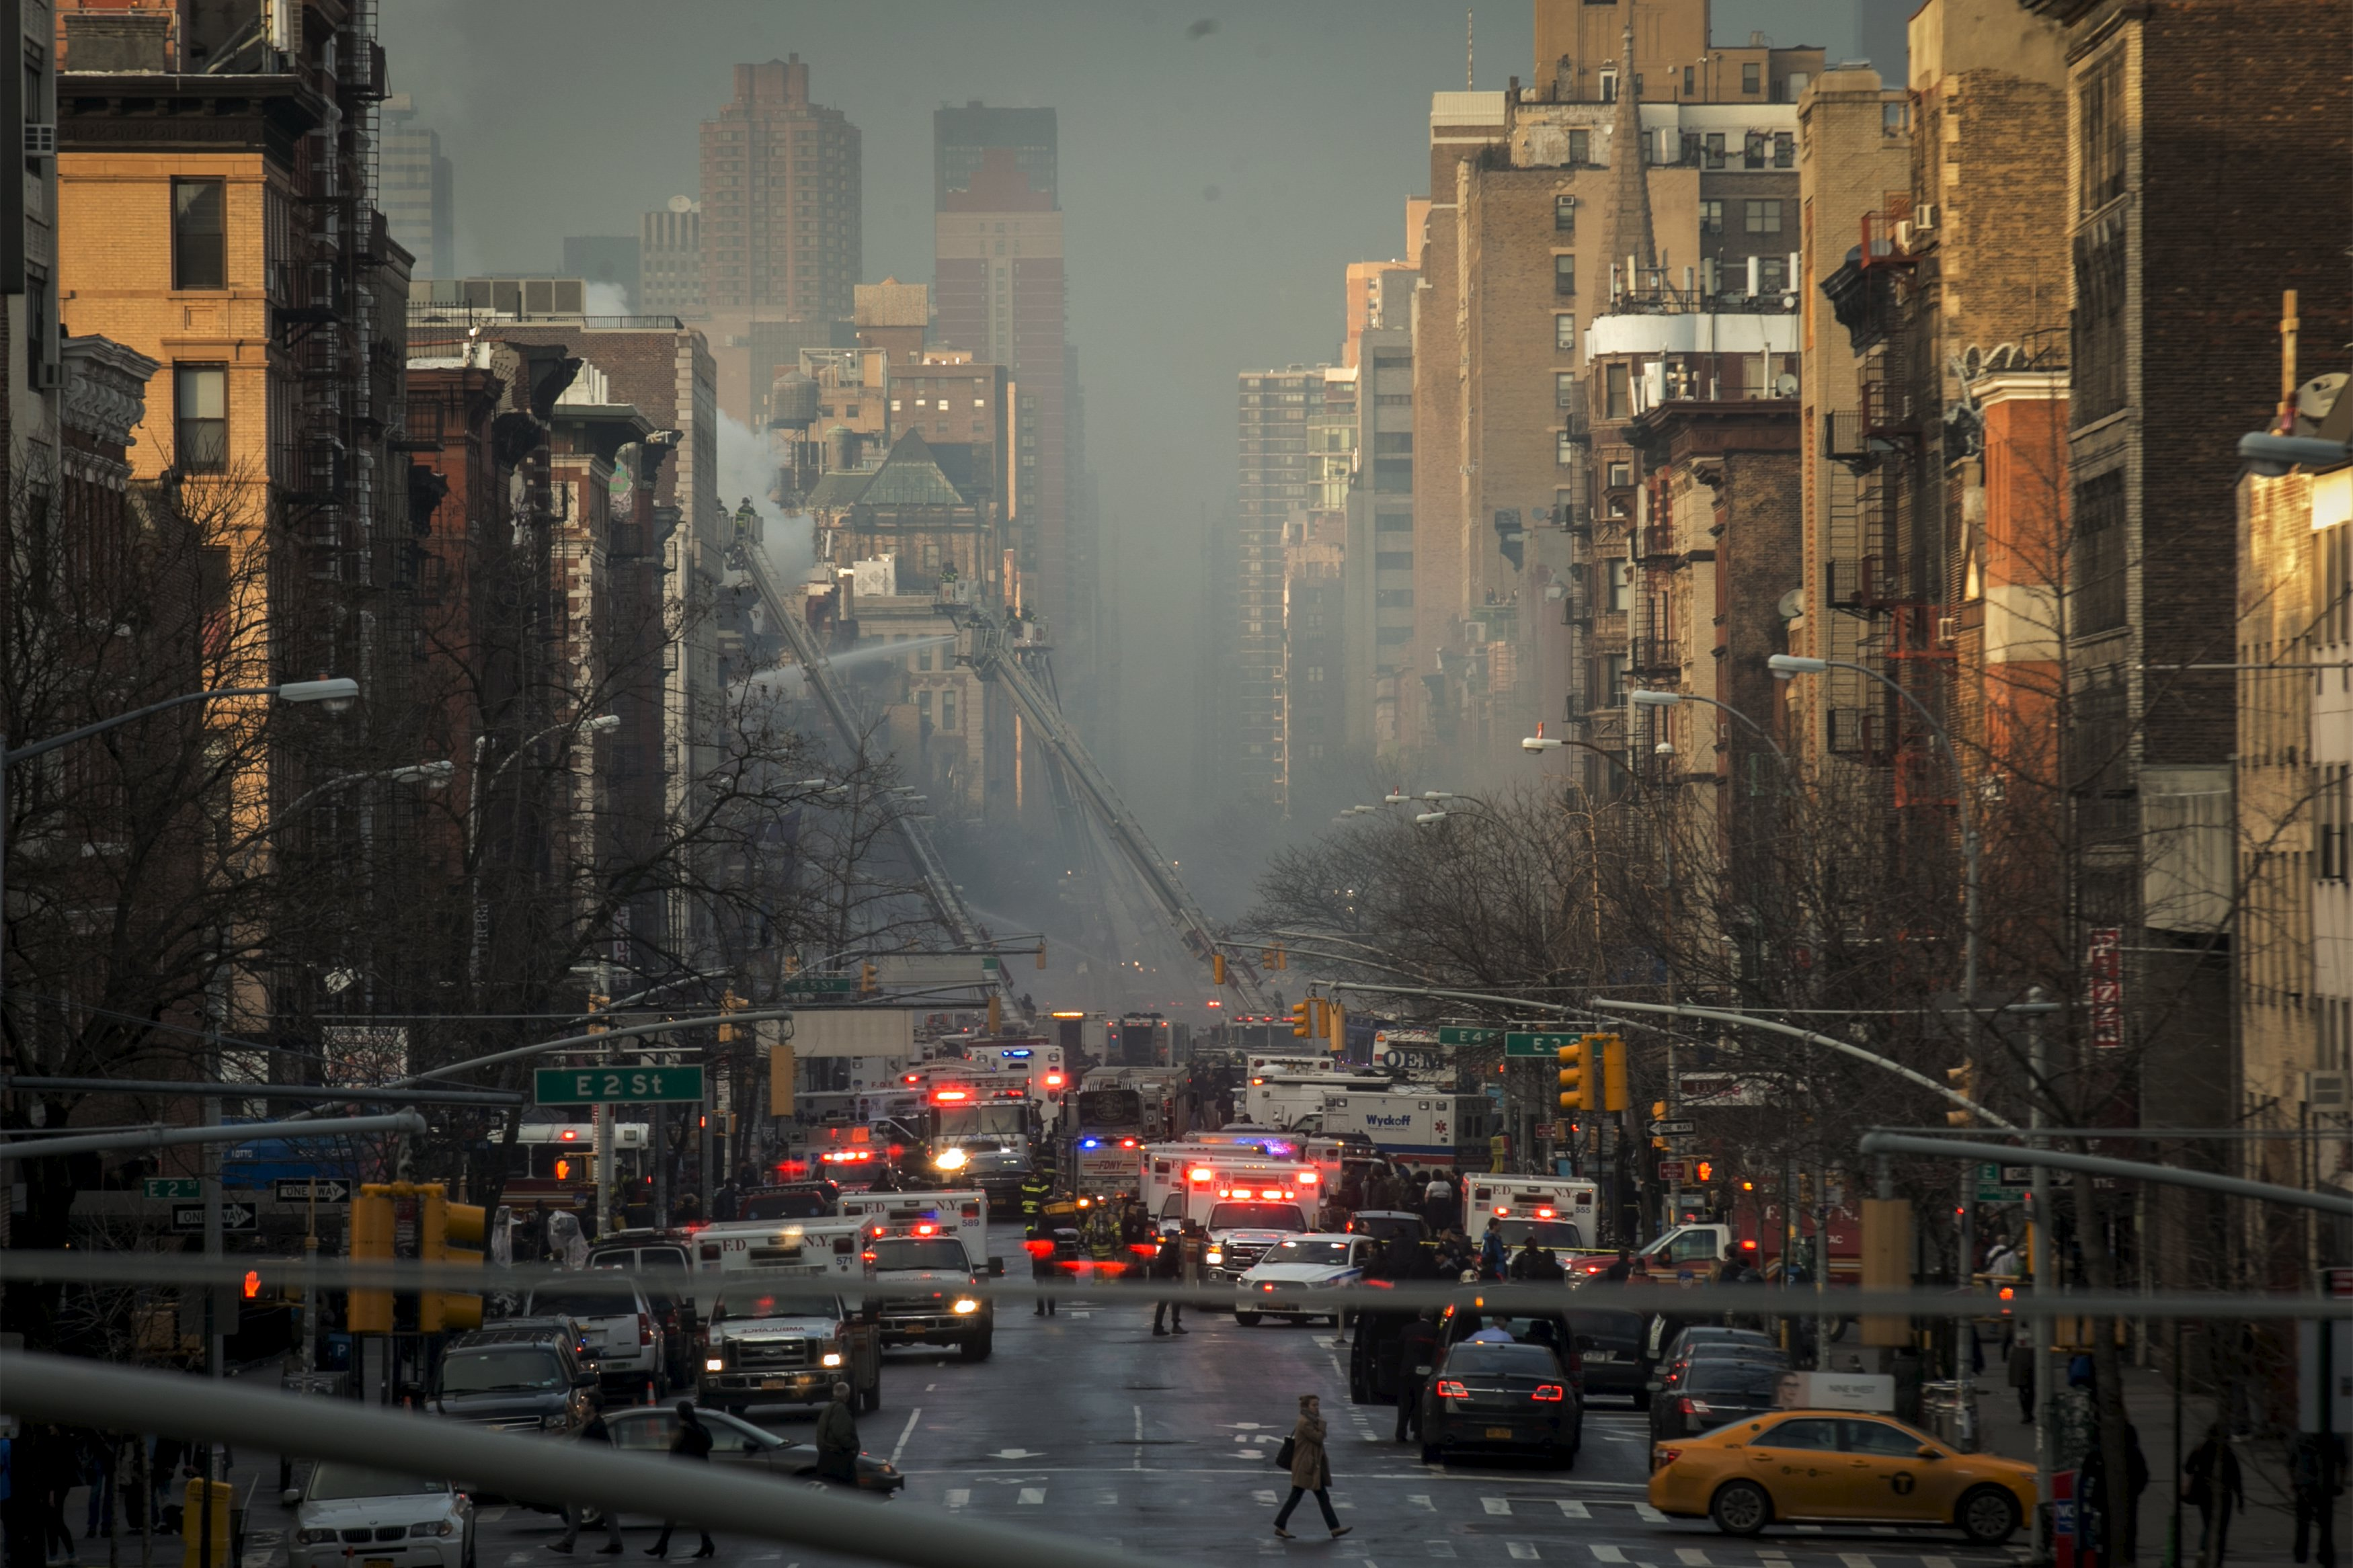 New York City buildings collapse in possible gas blast, injuring 12 people